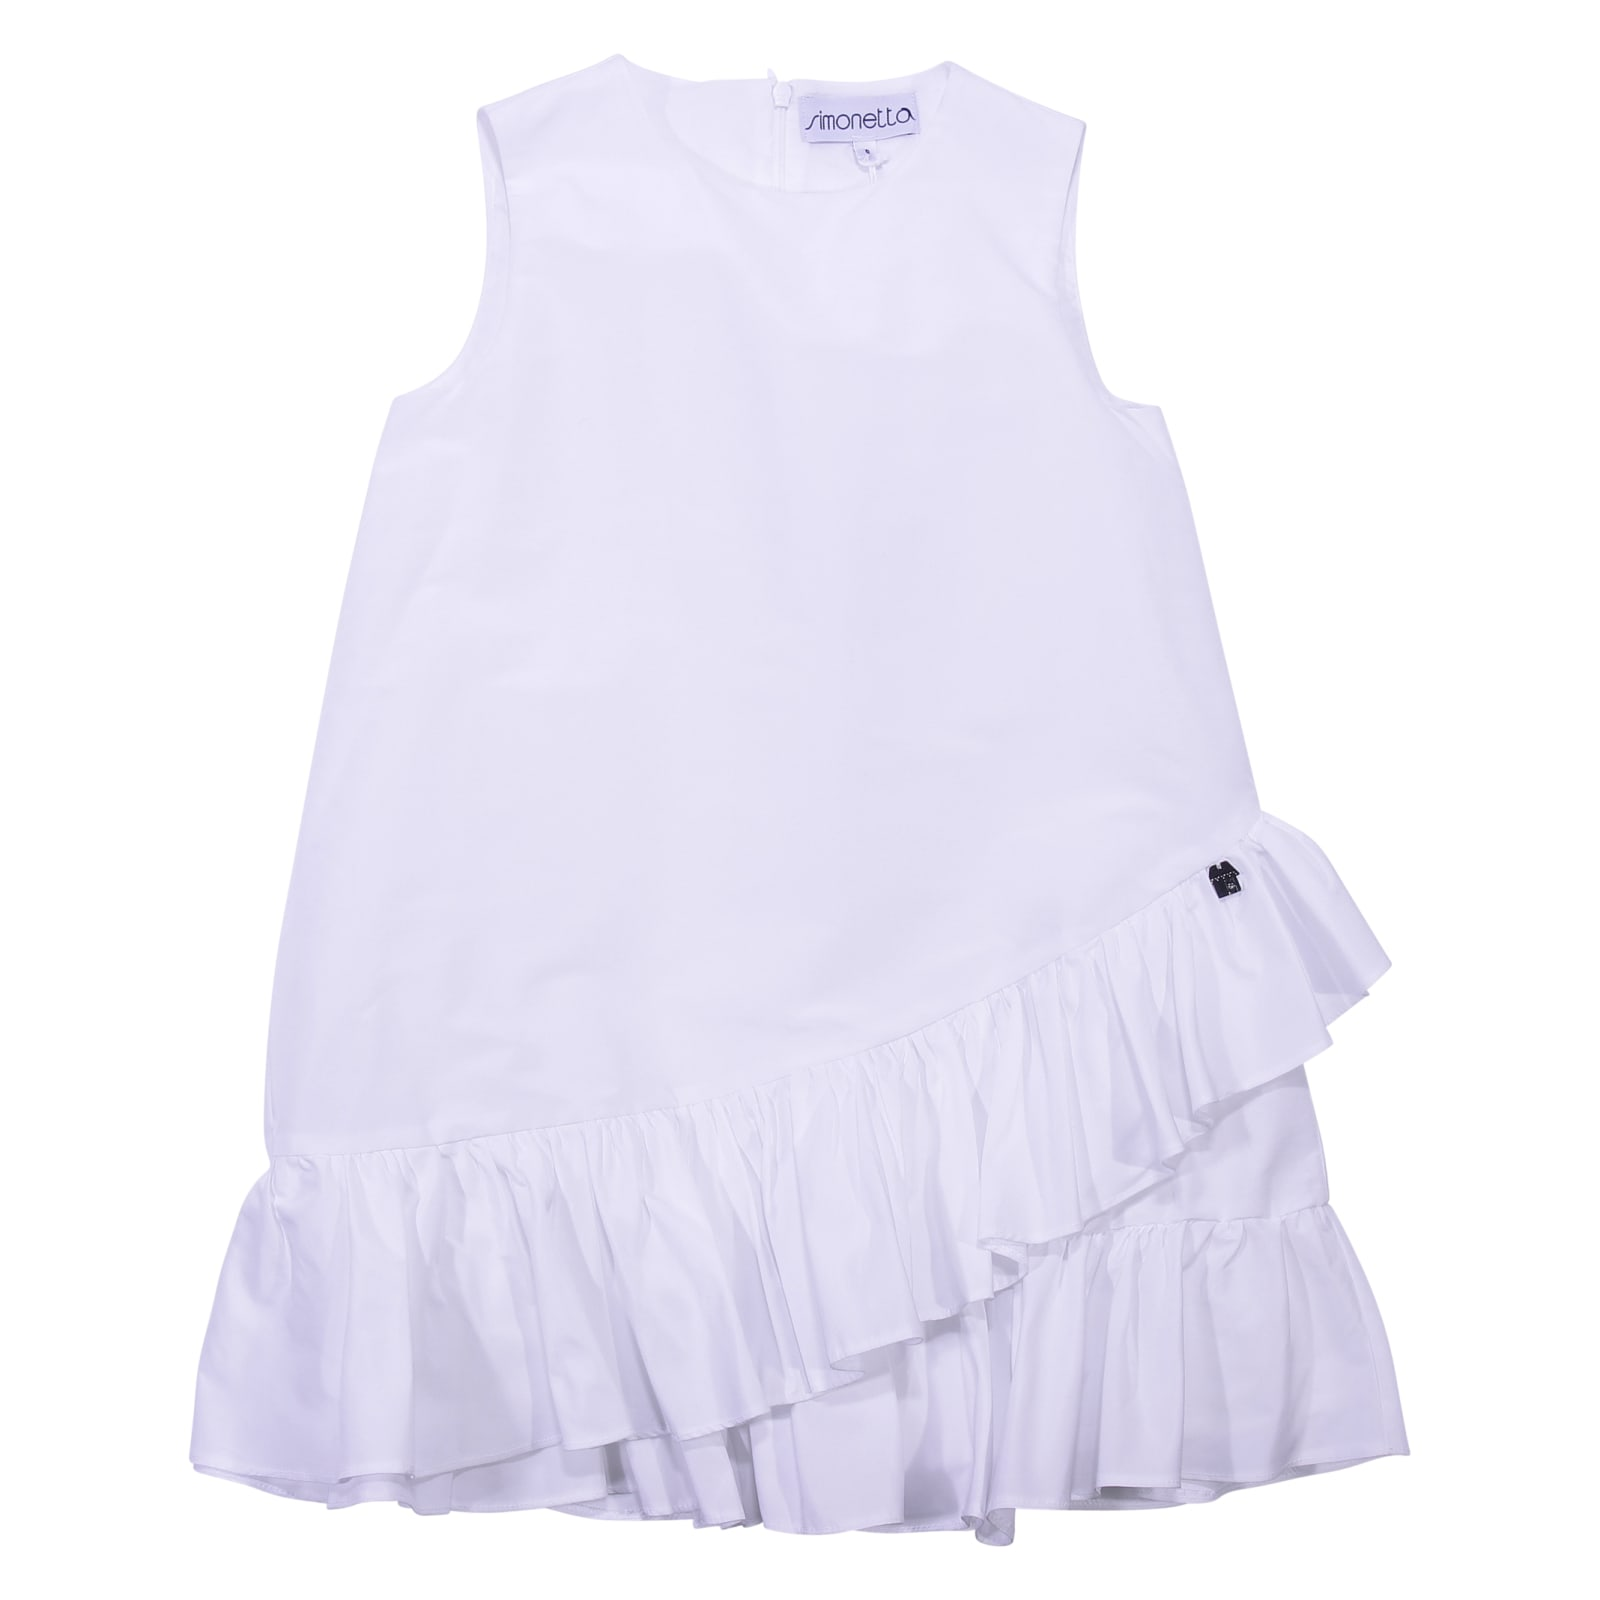 Photo of  Simonetta White Ruffled Dress- shop Simonetta  online sales